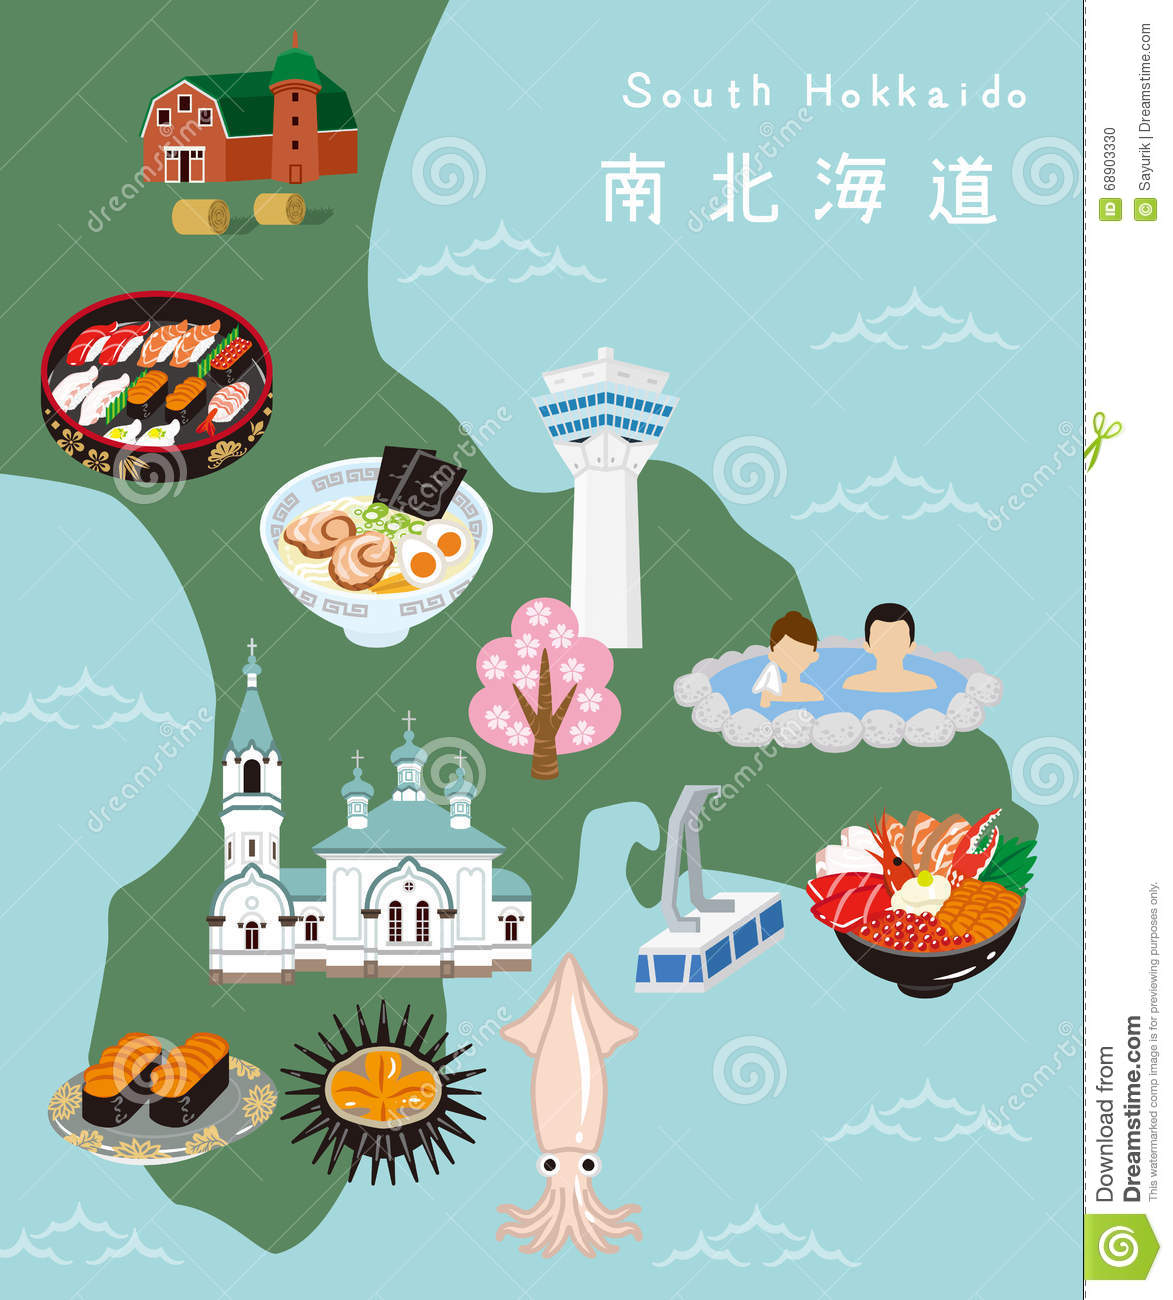 More similar stock images of ` South Hokkaido Illustration Map `